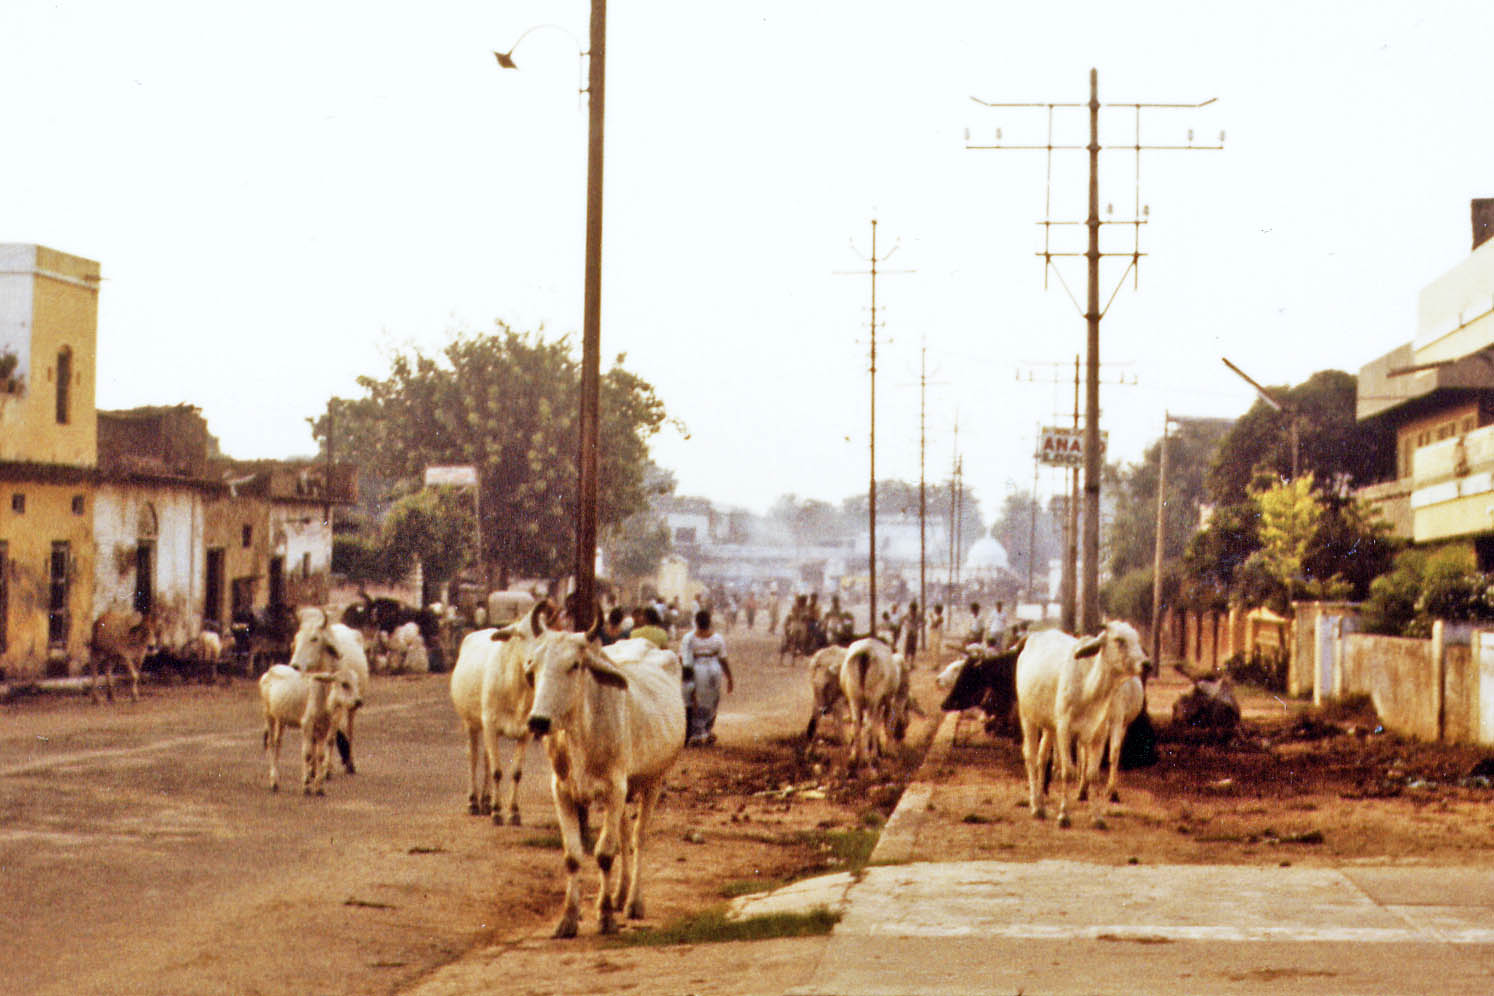 Agra, cows in the street